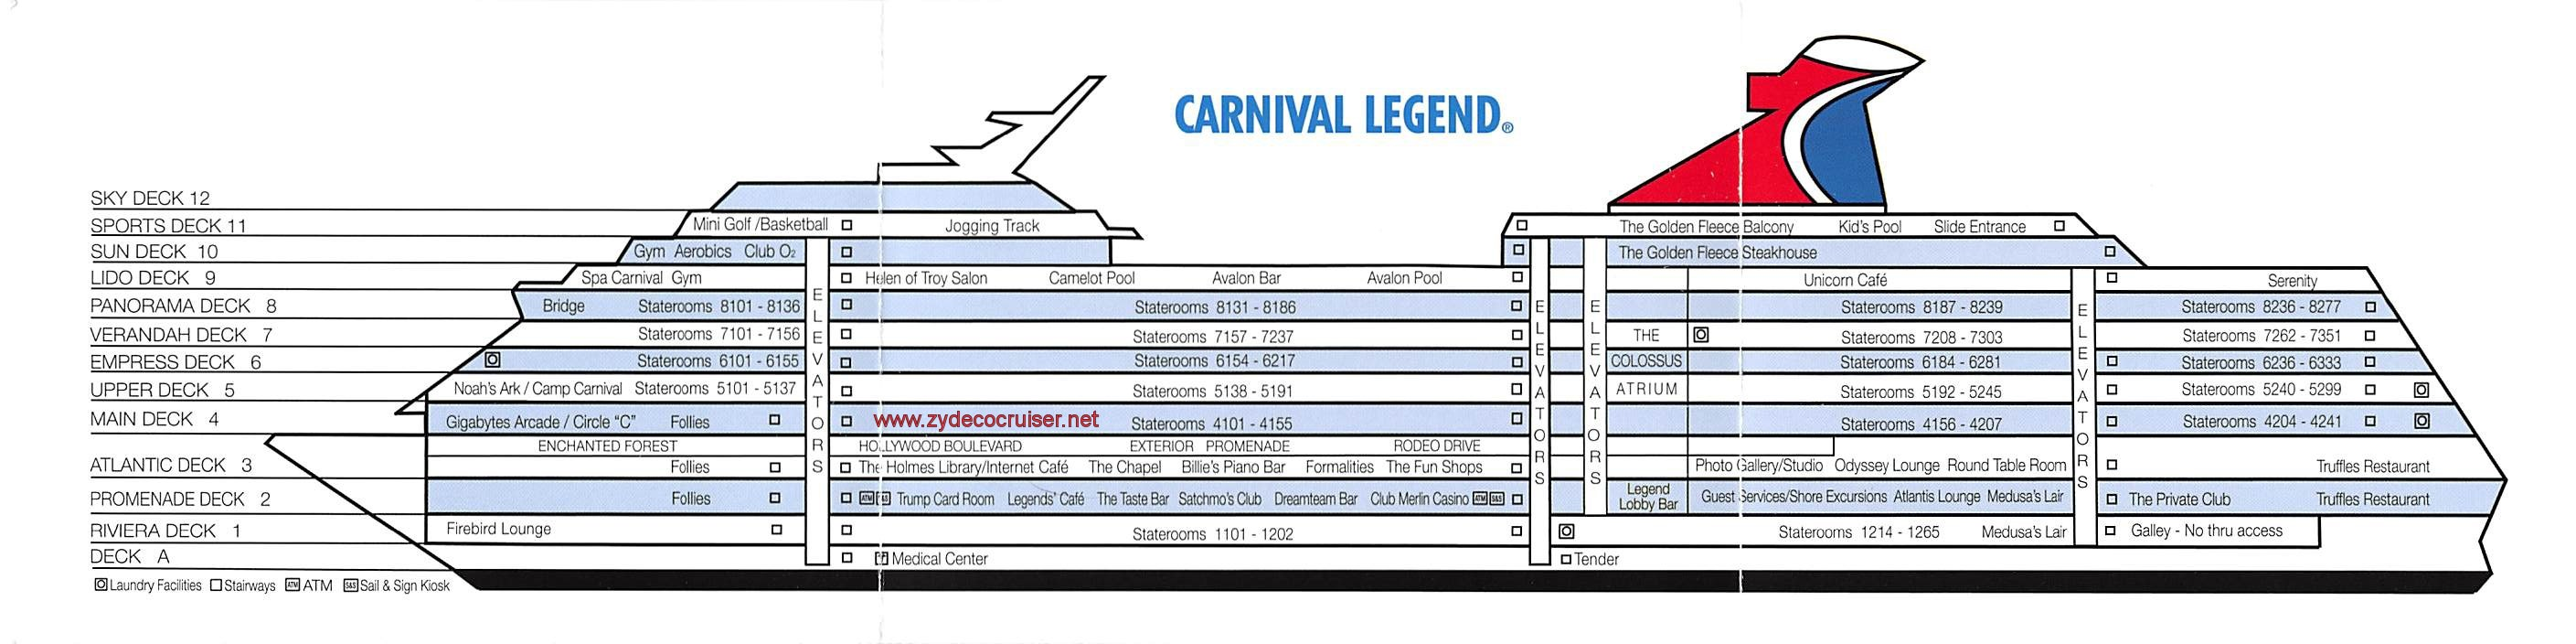 21 wallpapers carnival cruise deck plan legend punchaos latest the link above will take you to cruisins custom interactive cruise ship tracker once there you will also have the option to select from hundreds of baanklon Images